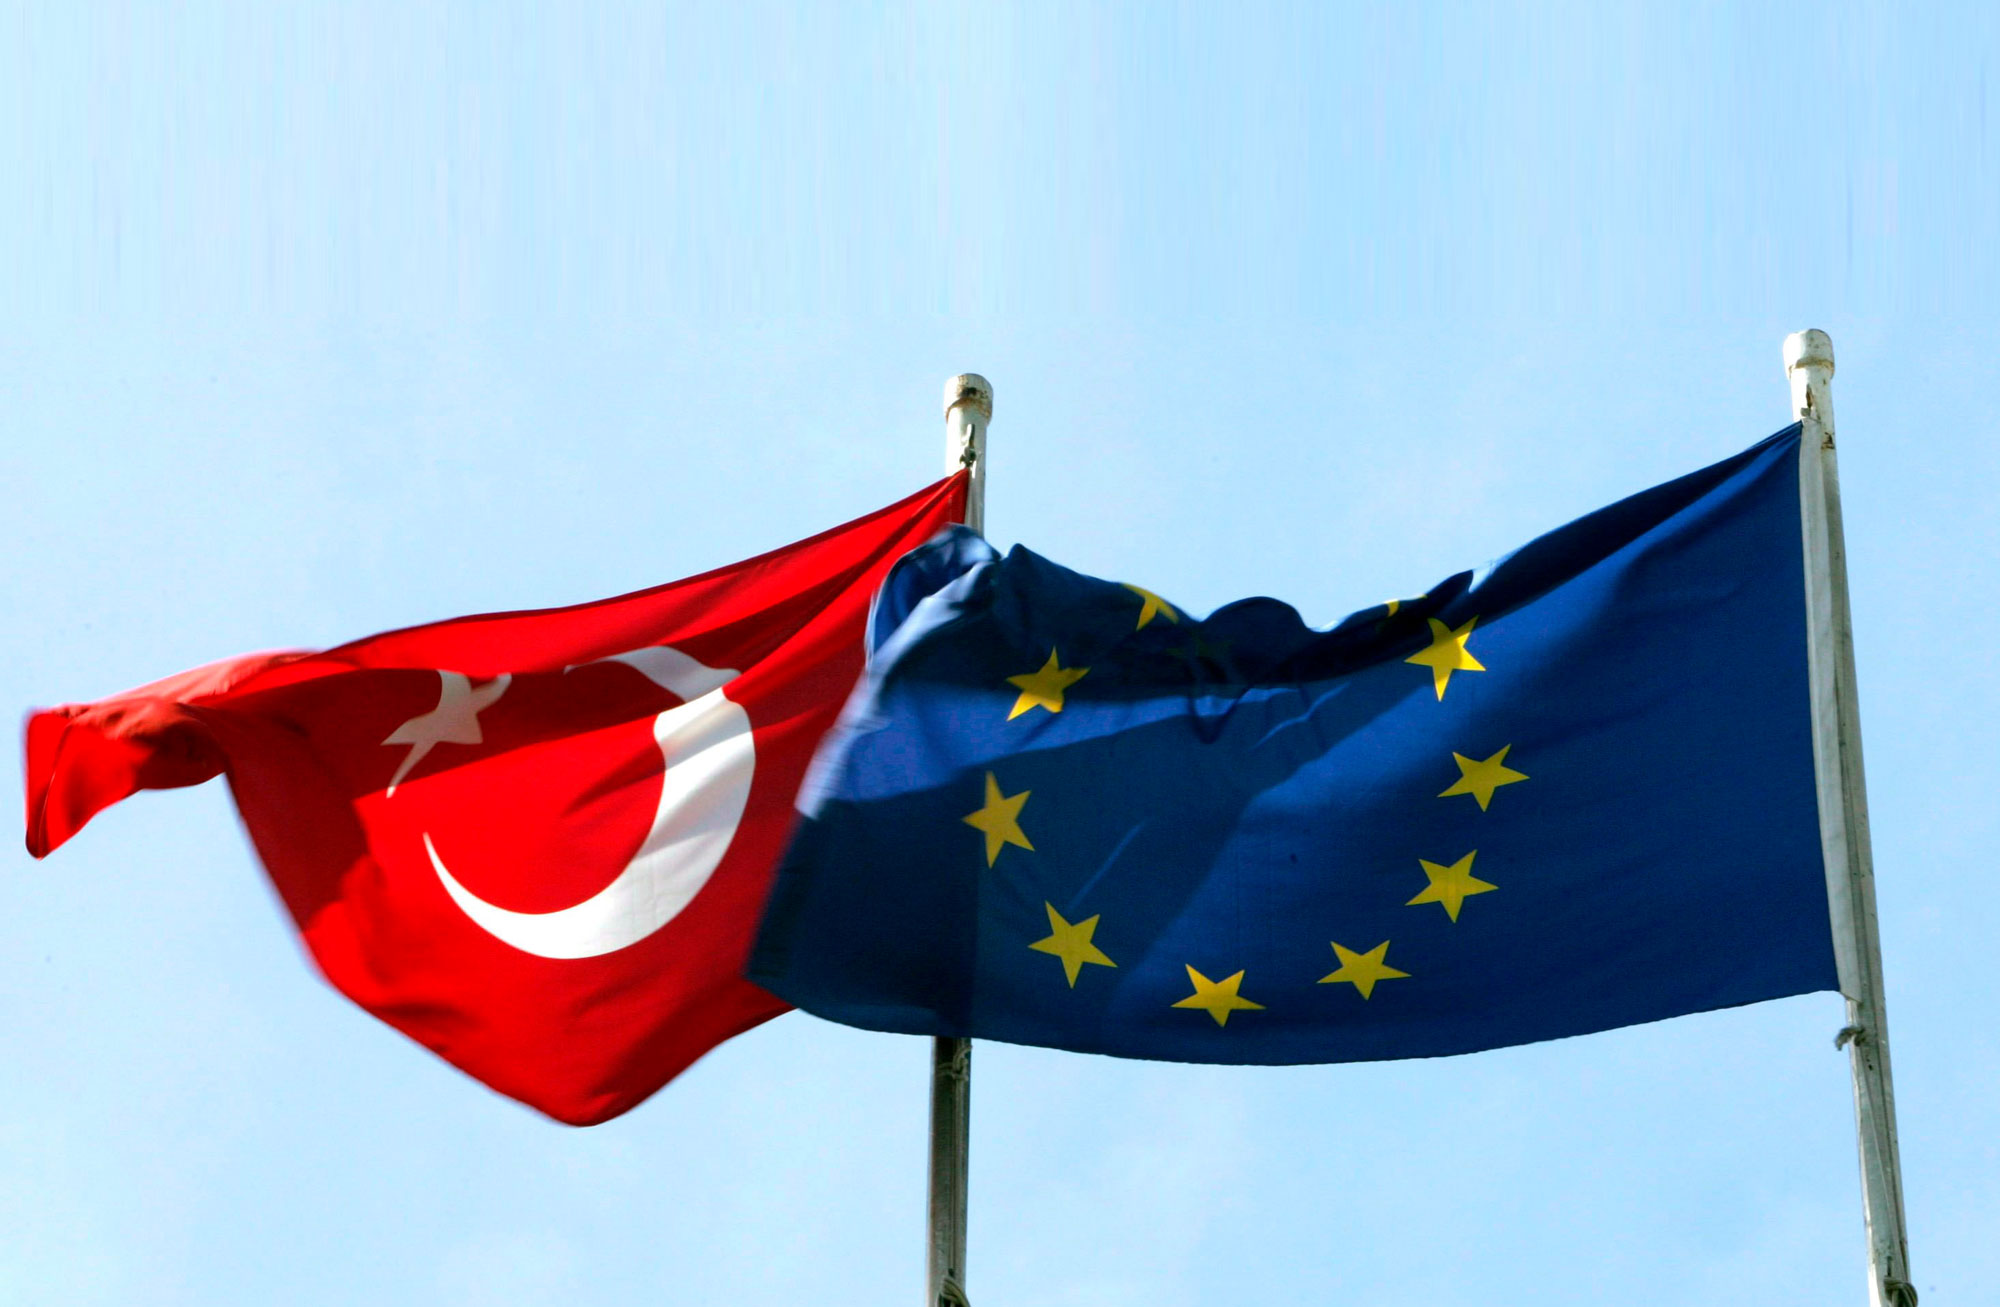 France wants discussion 'without taboos' on EU-Turkey ties